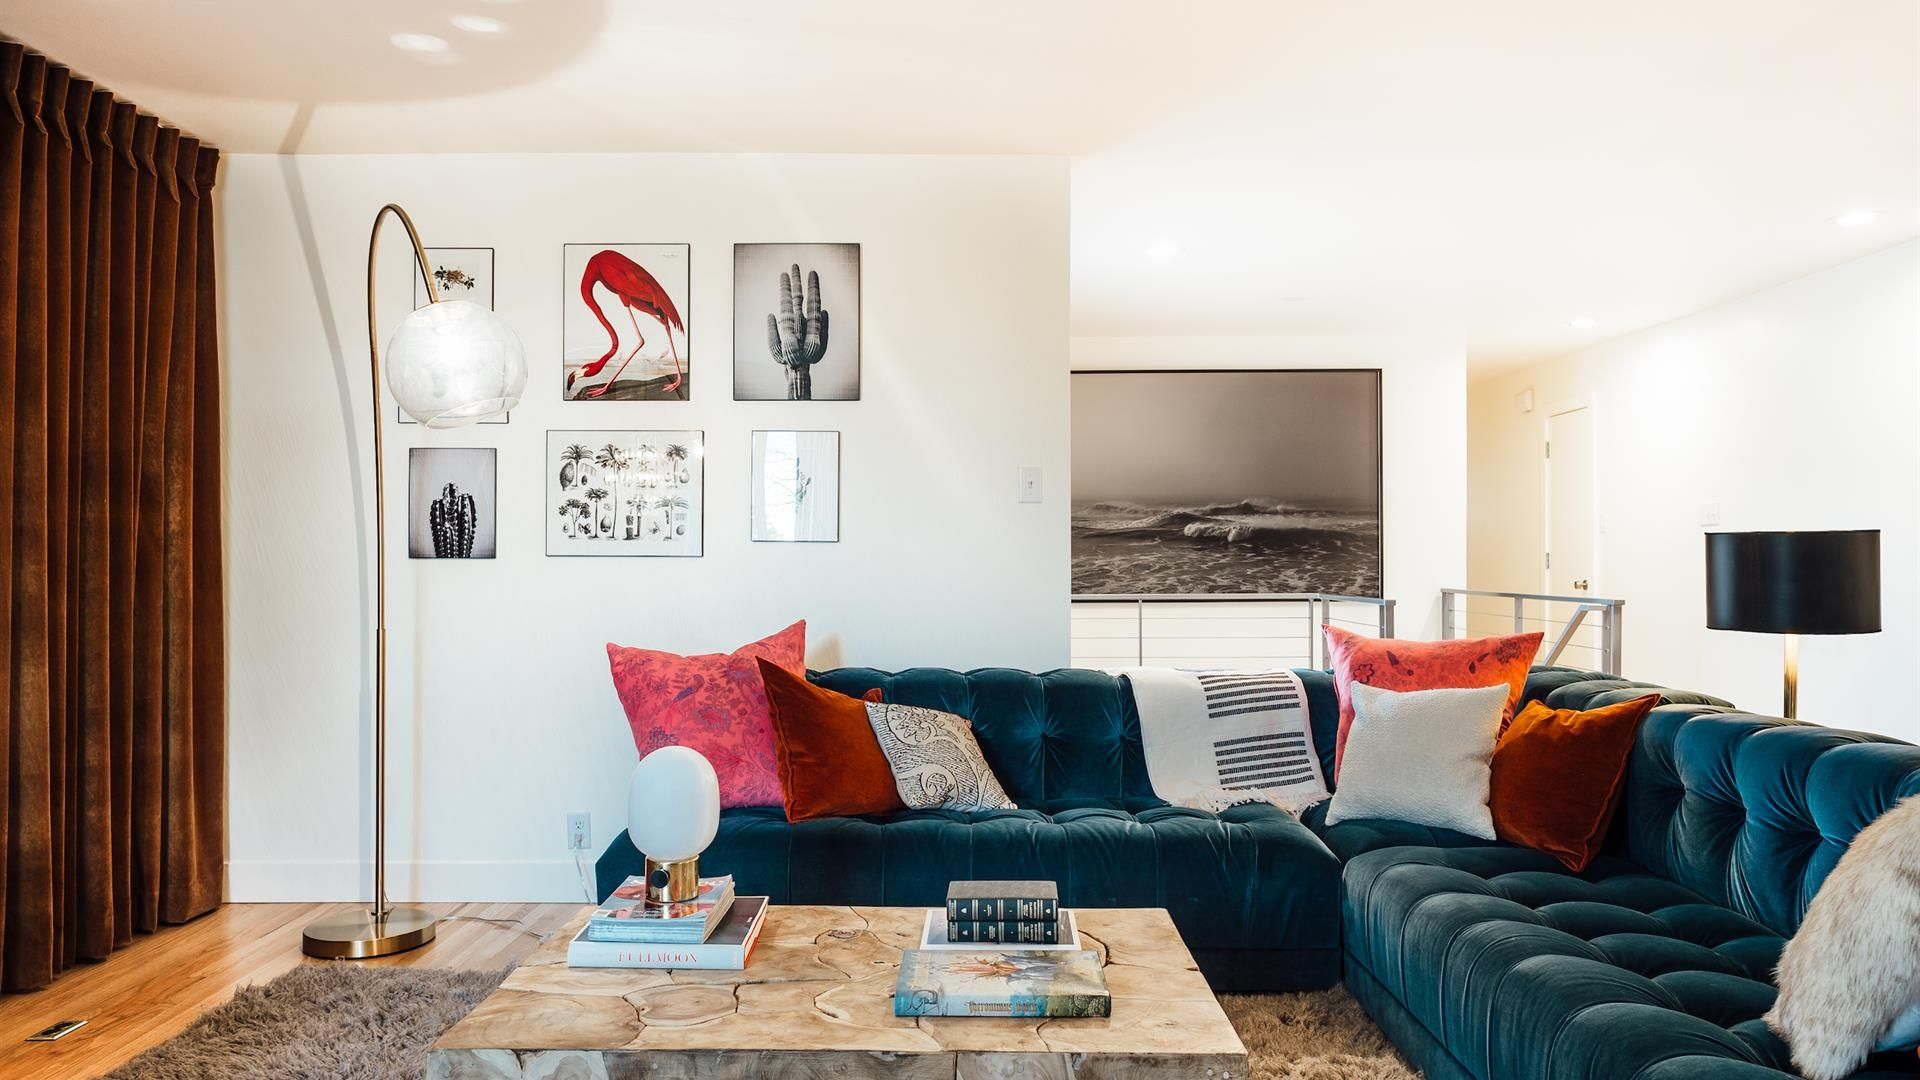 A modern, eclectic living room design | Clean with pops of color ...